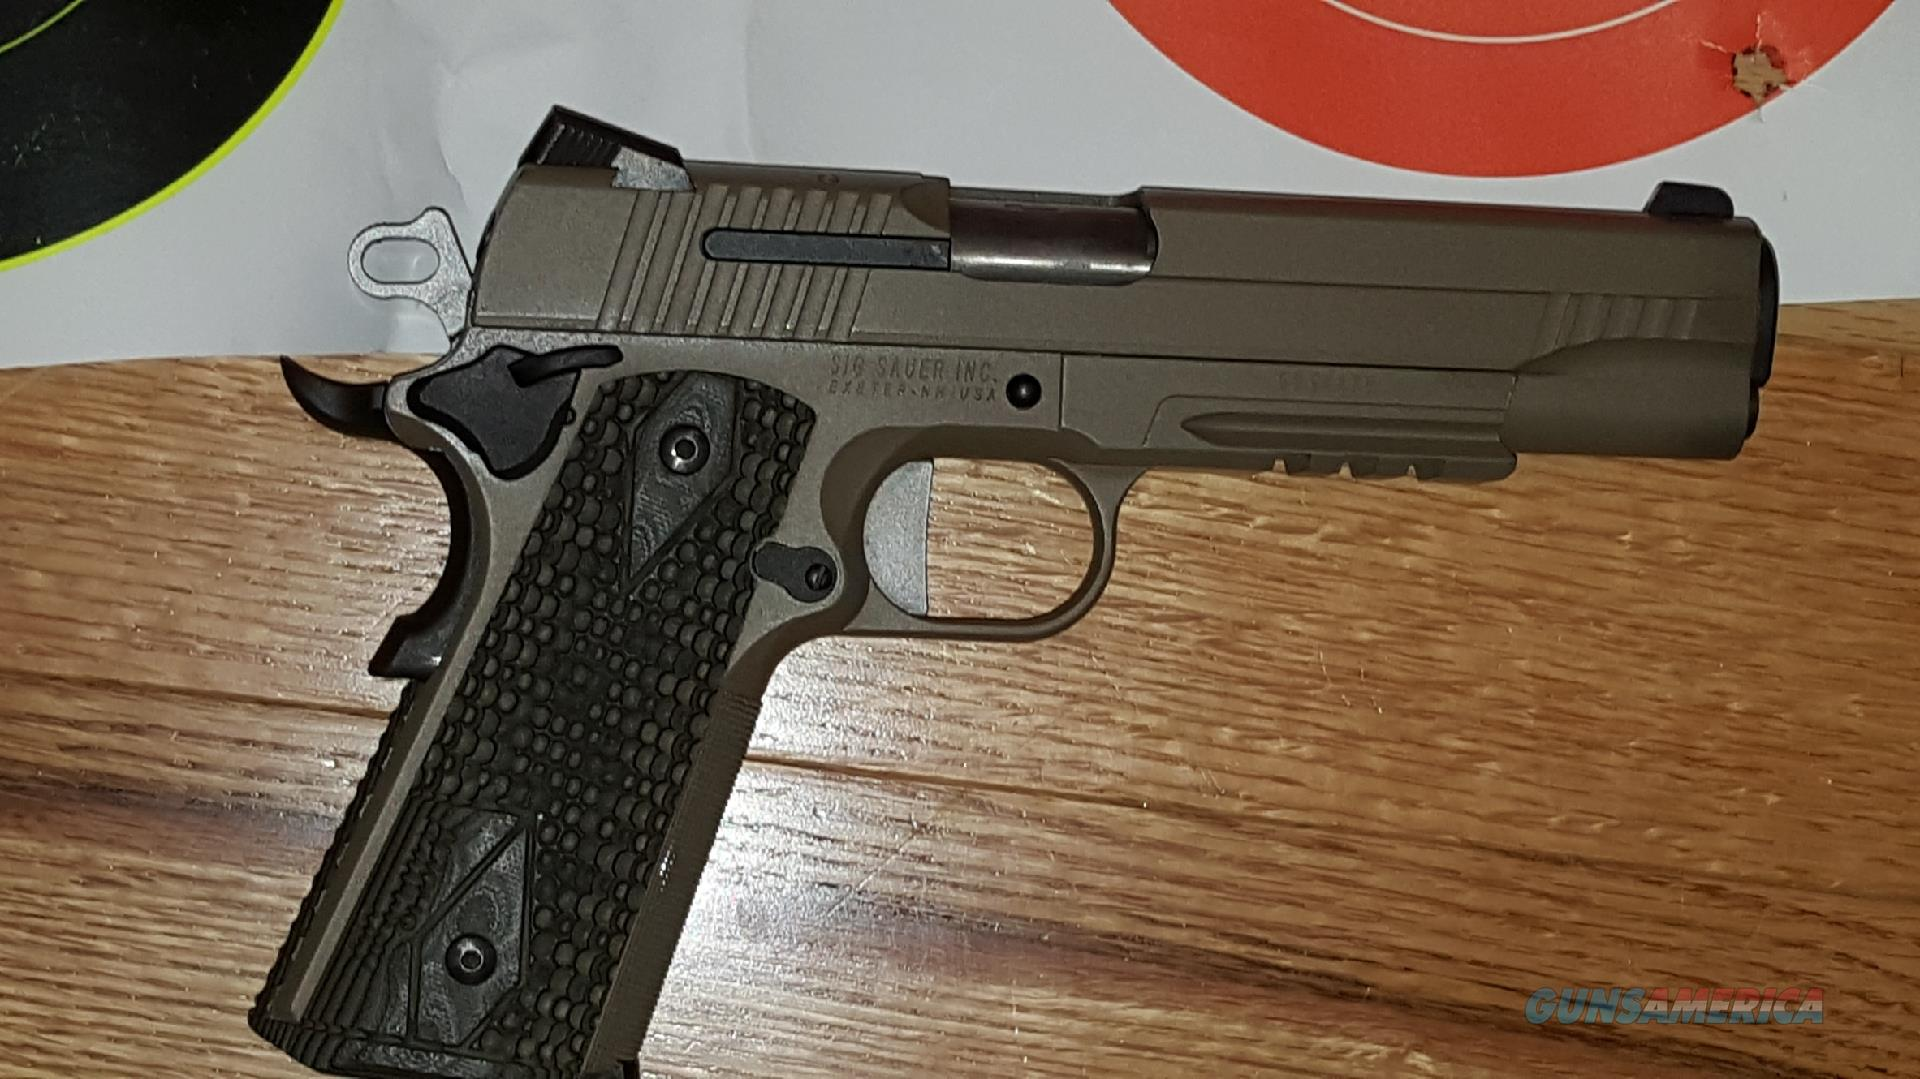 Sig Arms 1911 with night sights  Guns > Pistols > Sig - Sauer/Sigarms Pistols > 1911